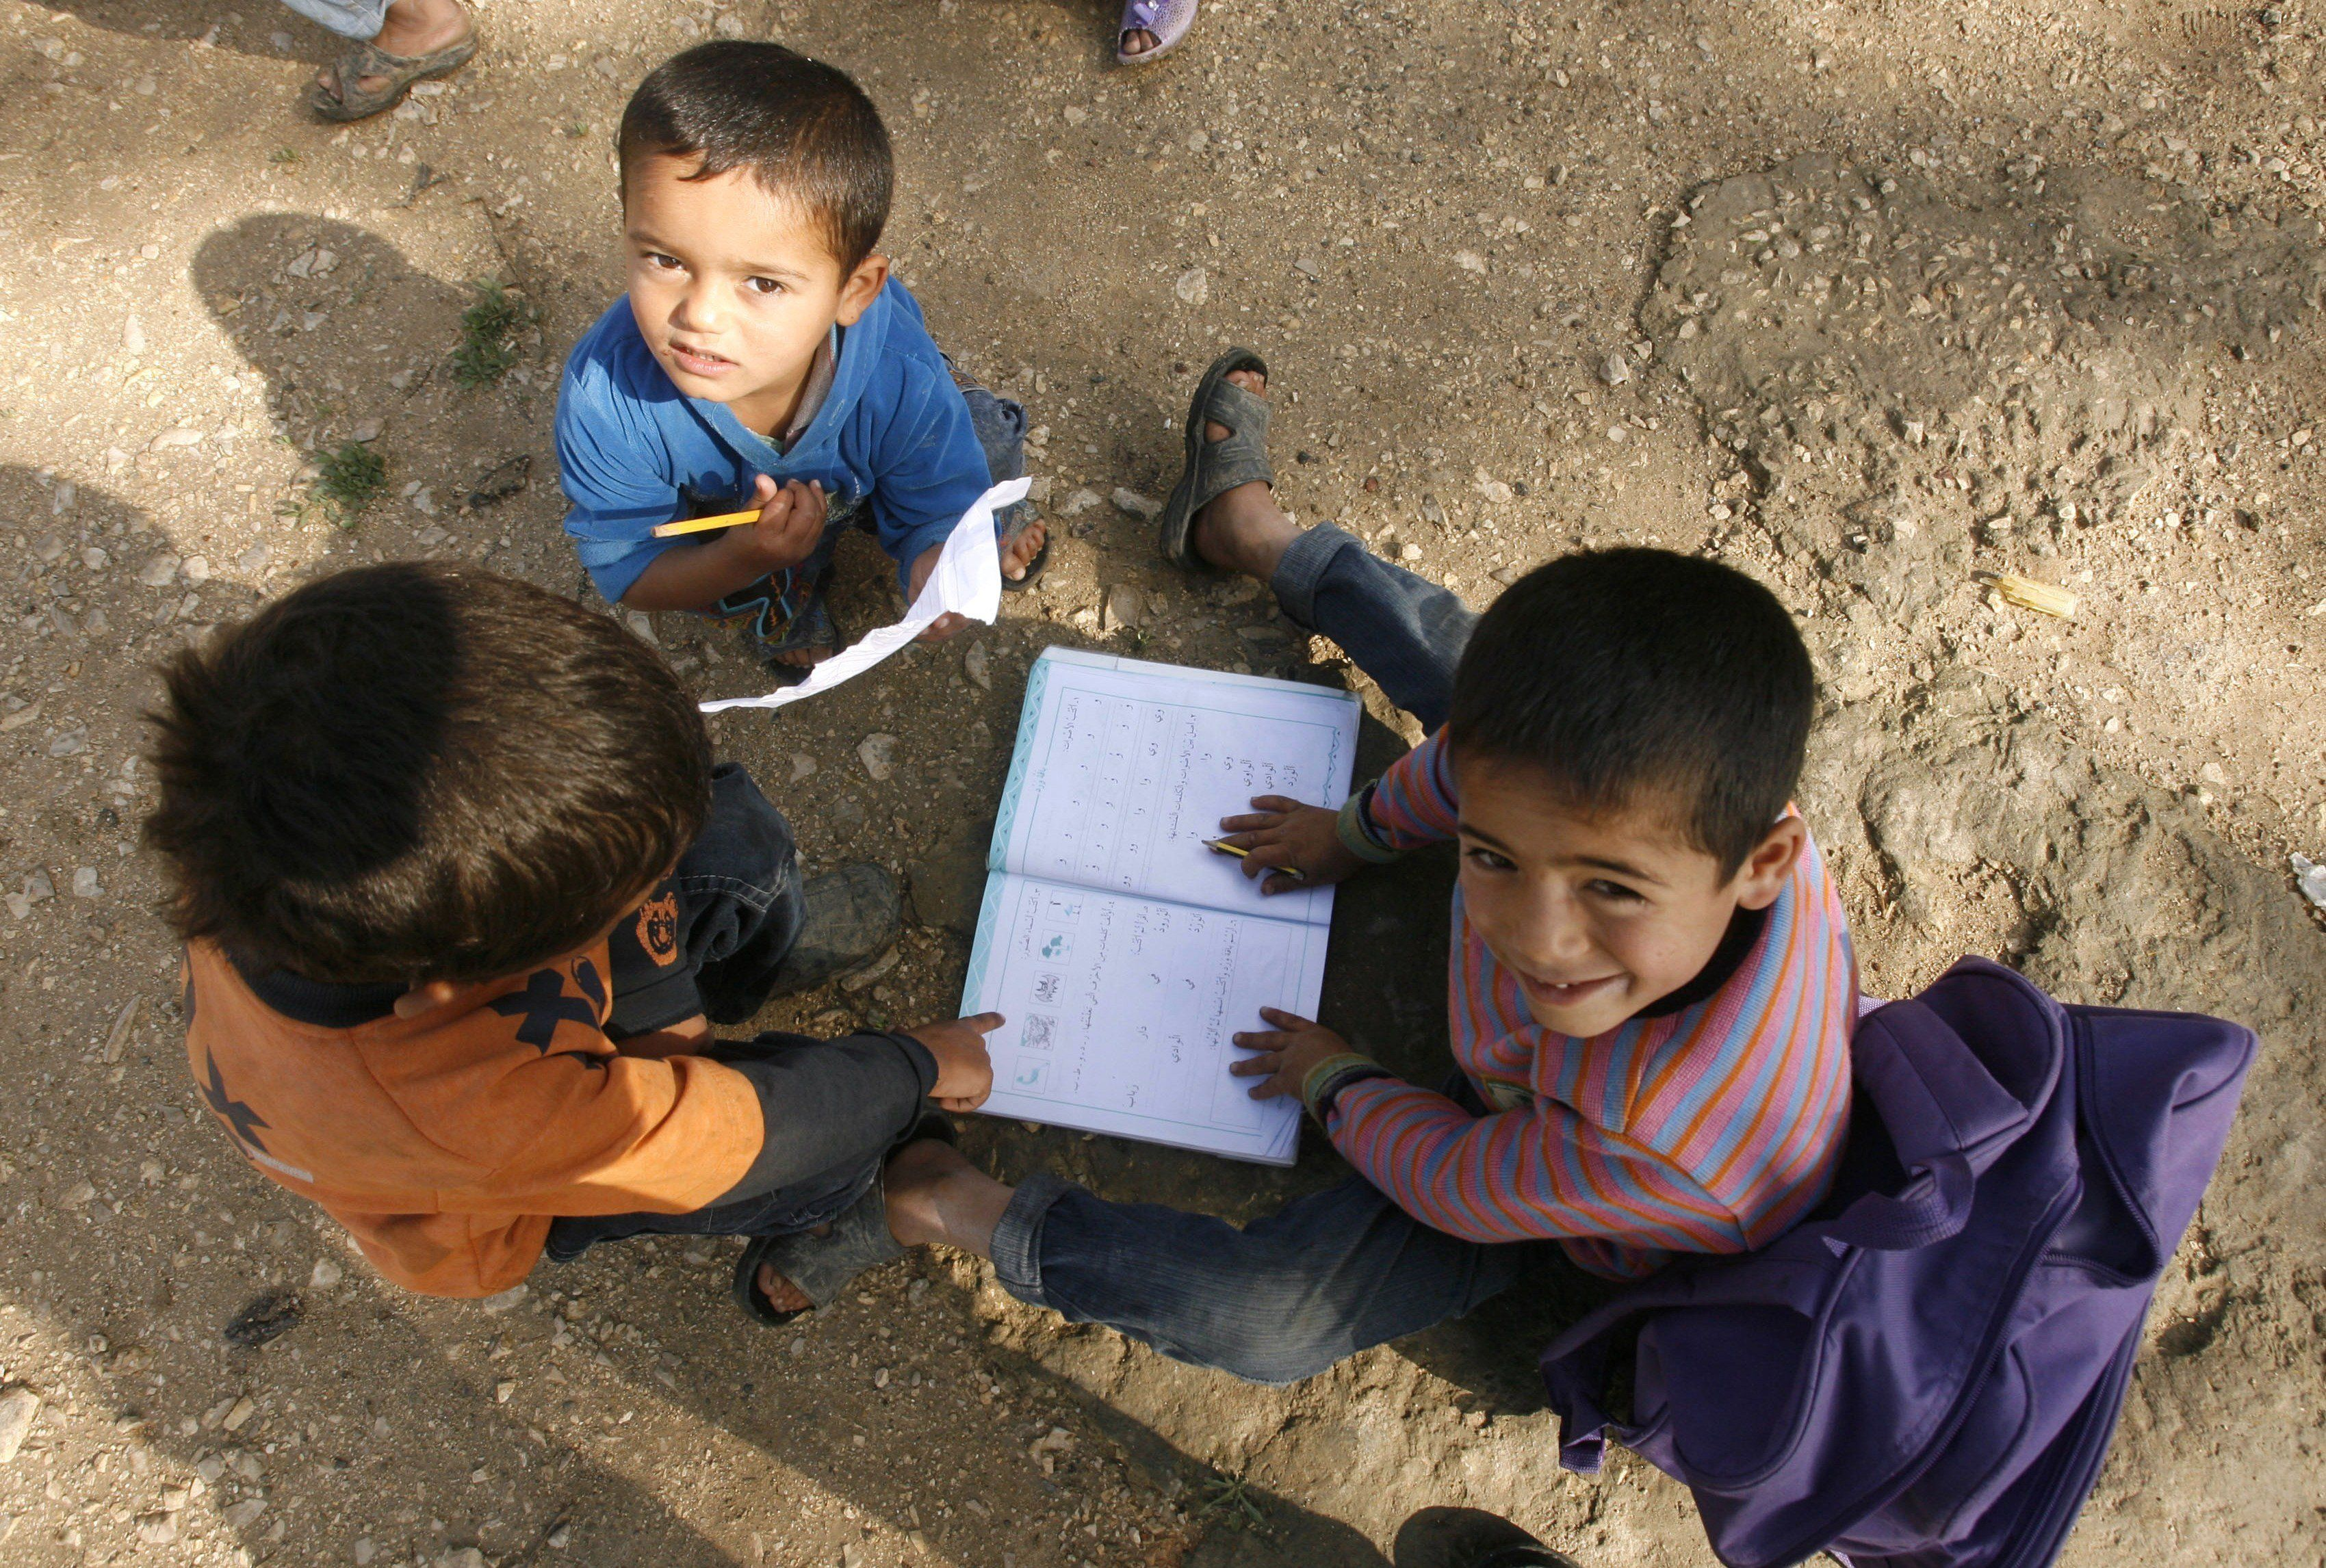 "<span class='image-component__caption' itemprop=""caption"">Boys play with a school book at a UNHCR's camp for Syrian refugees in south Lebanon on April 14, 2015. More than 12 million children in the Middle East are not being educated, despite advances in efforts to expand schooling, the UN children's agency UNICEF said. The figure does not include children forced from school by the conflicts in Syria and Iraq, who would bring the total not receiving an education to 15 million, the agency said in a new report. AFP PHOTO / MAHMOUD ZAYYAT (Photo credit should read MAHMOUD ZAYYAT/AFP/Getty Images)</span>"